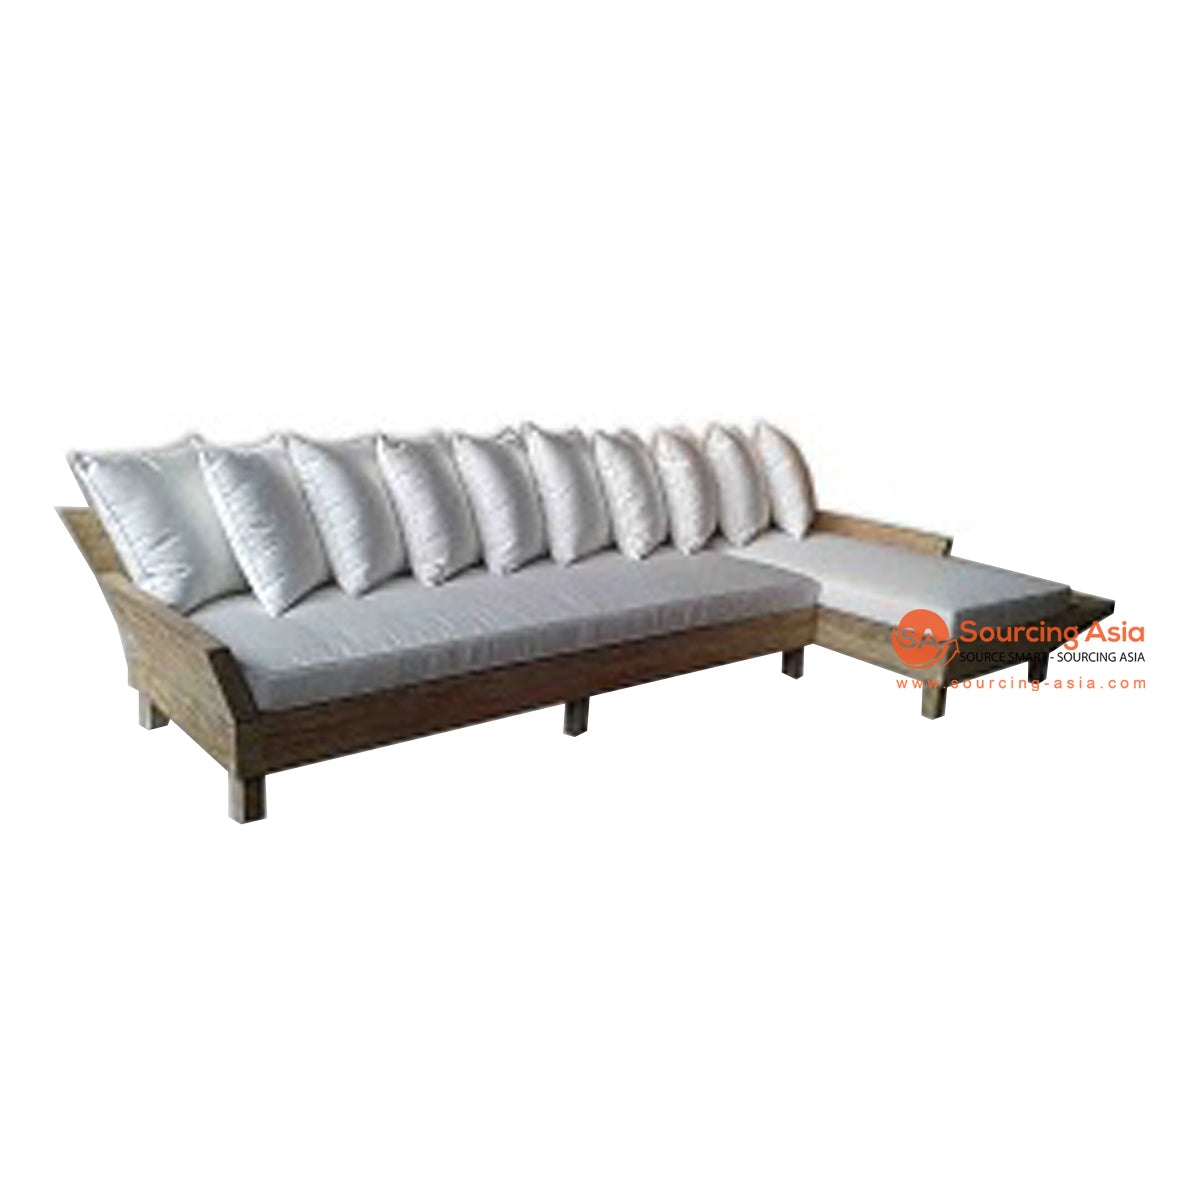 ECL078 NATURAL RECYCLED TEAK WOOD LOW CORNER LOUNGER SOFA WITHOUT CUSHION